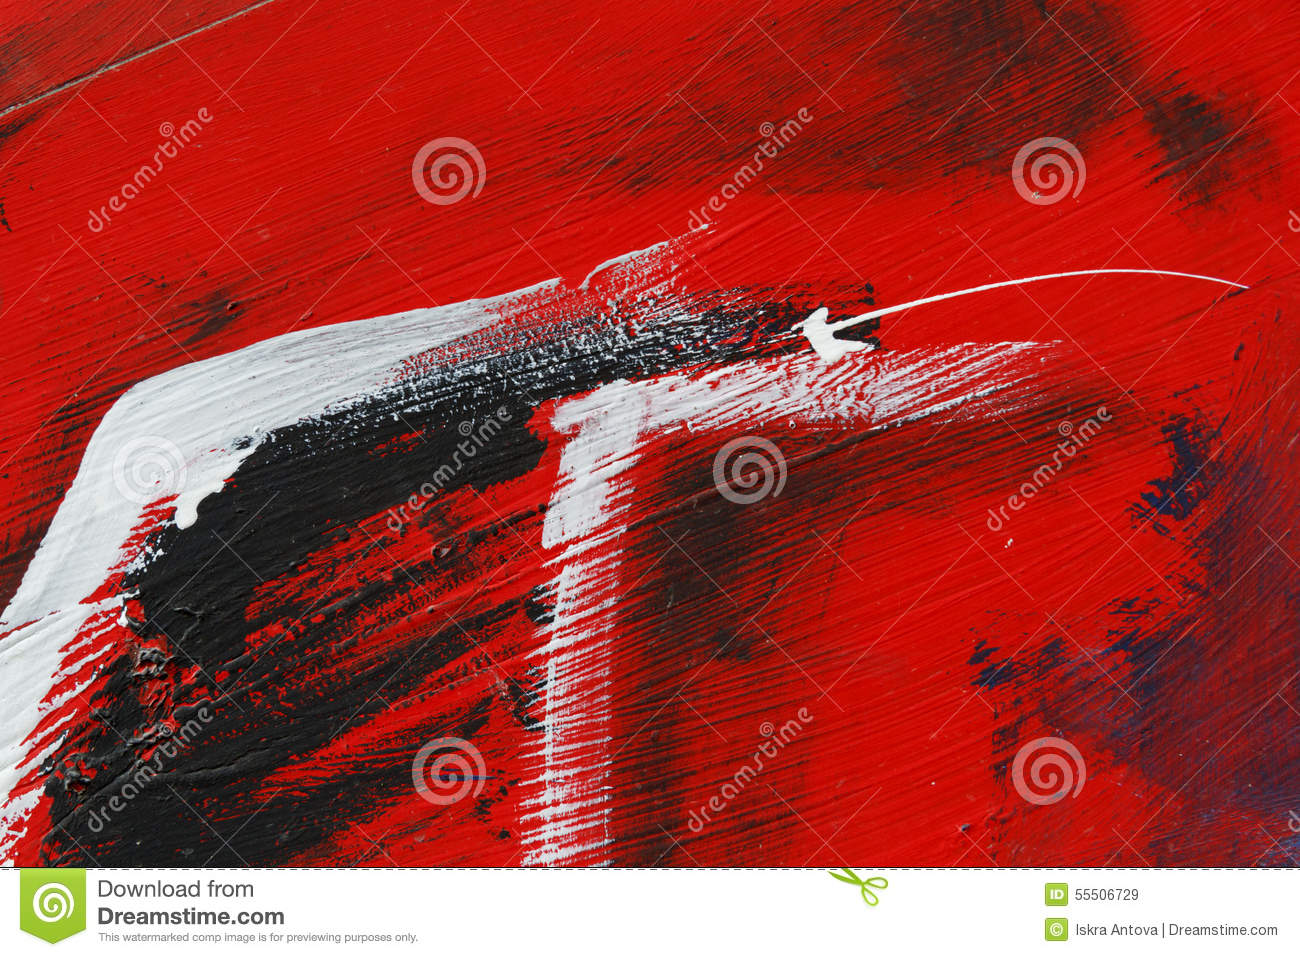 Download Small Part Of Painted Metal Wall With Black,red And White Paint  Stock Image